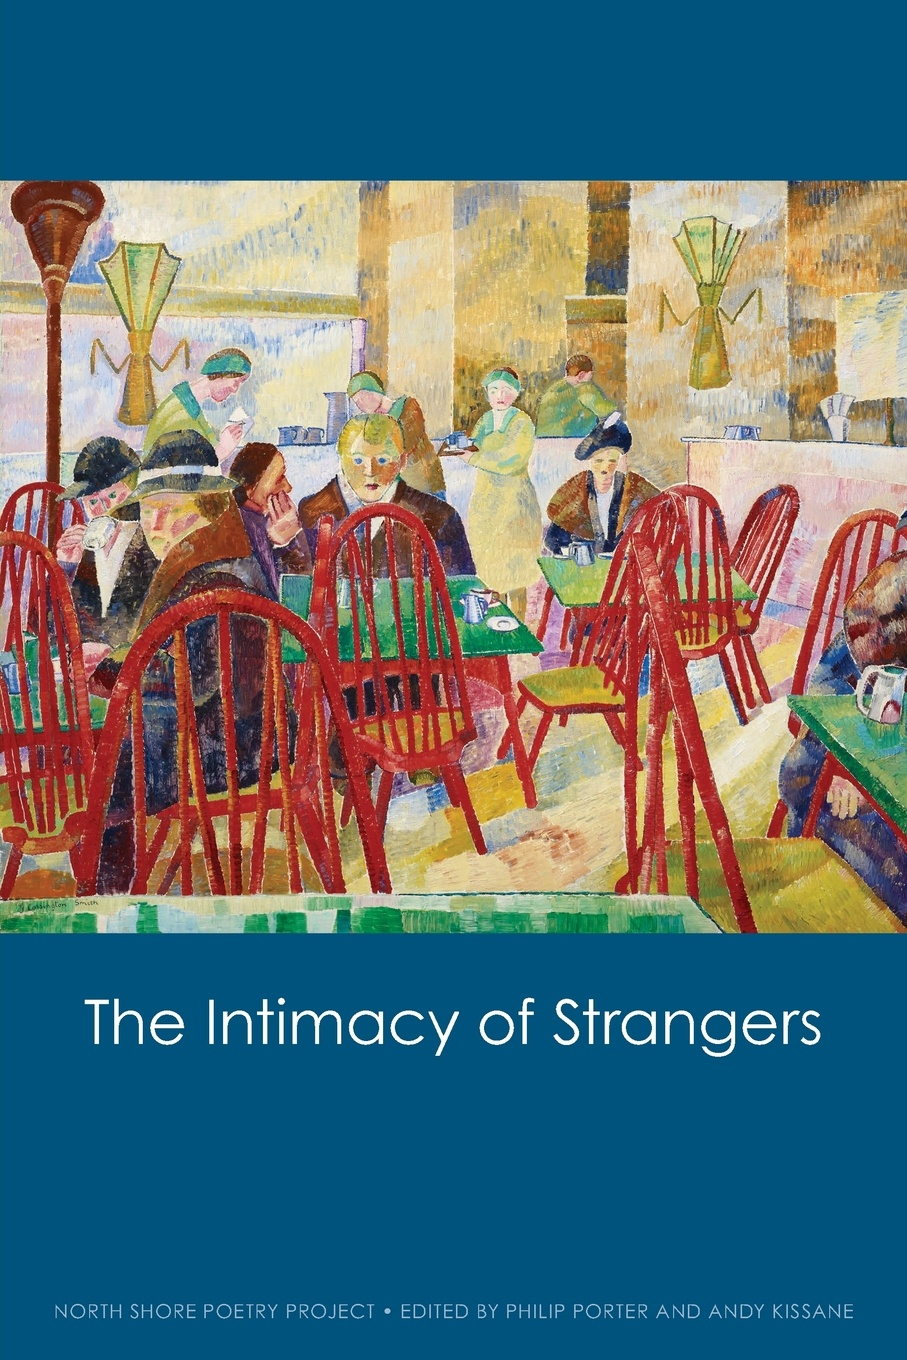 The Intimacy of Strangers seamus heaney and the adequacy of poetry